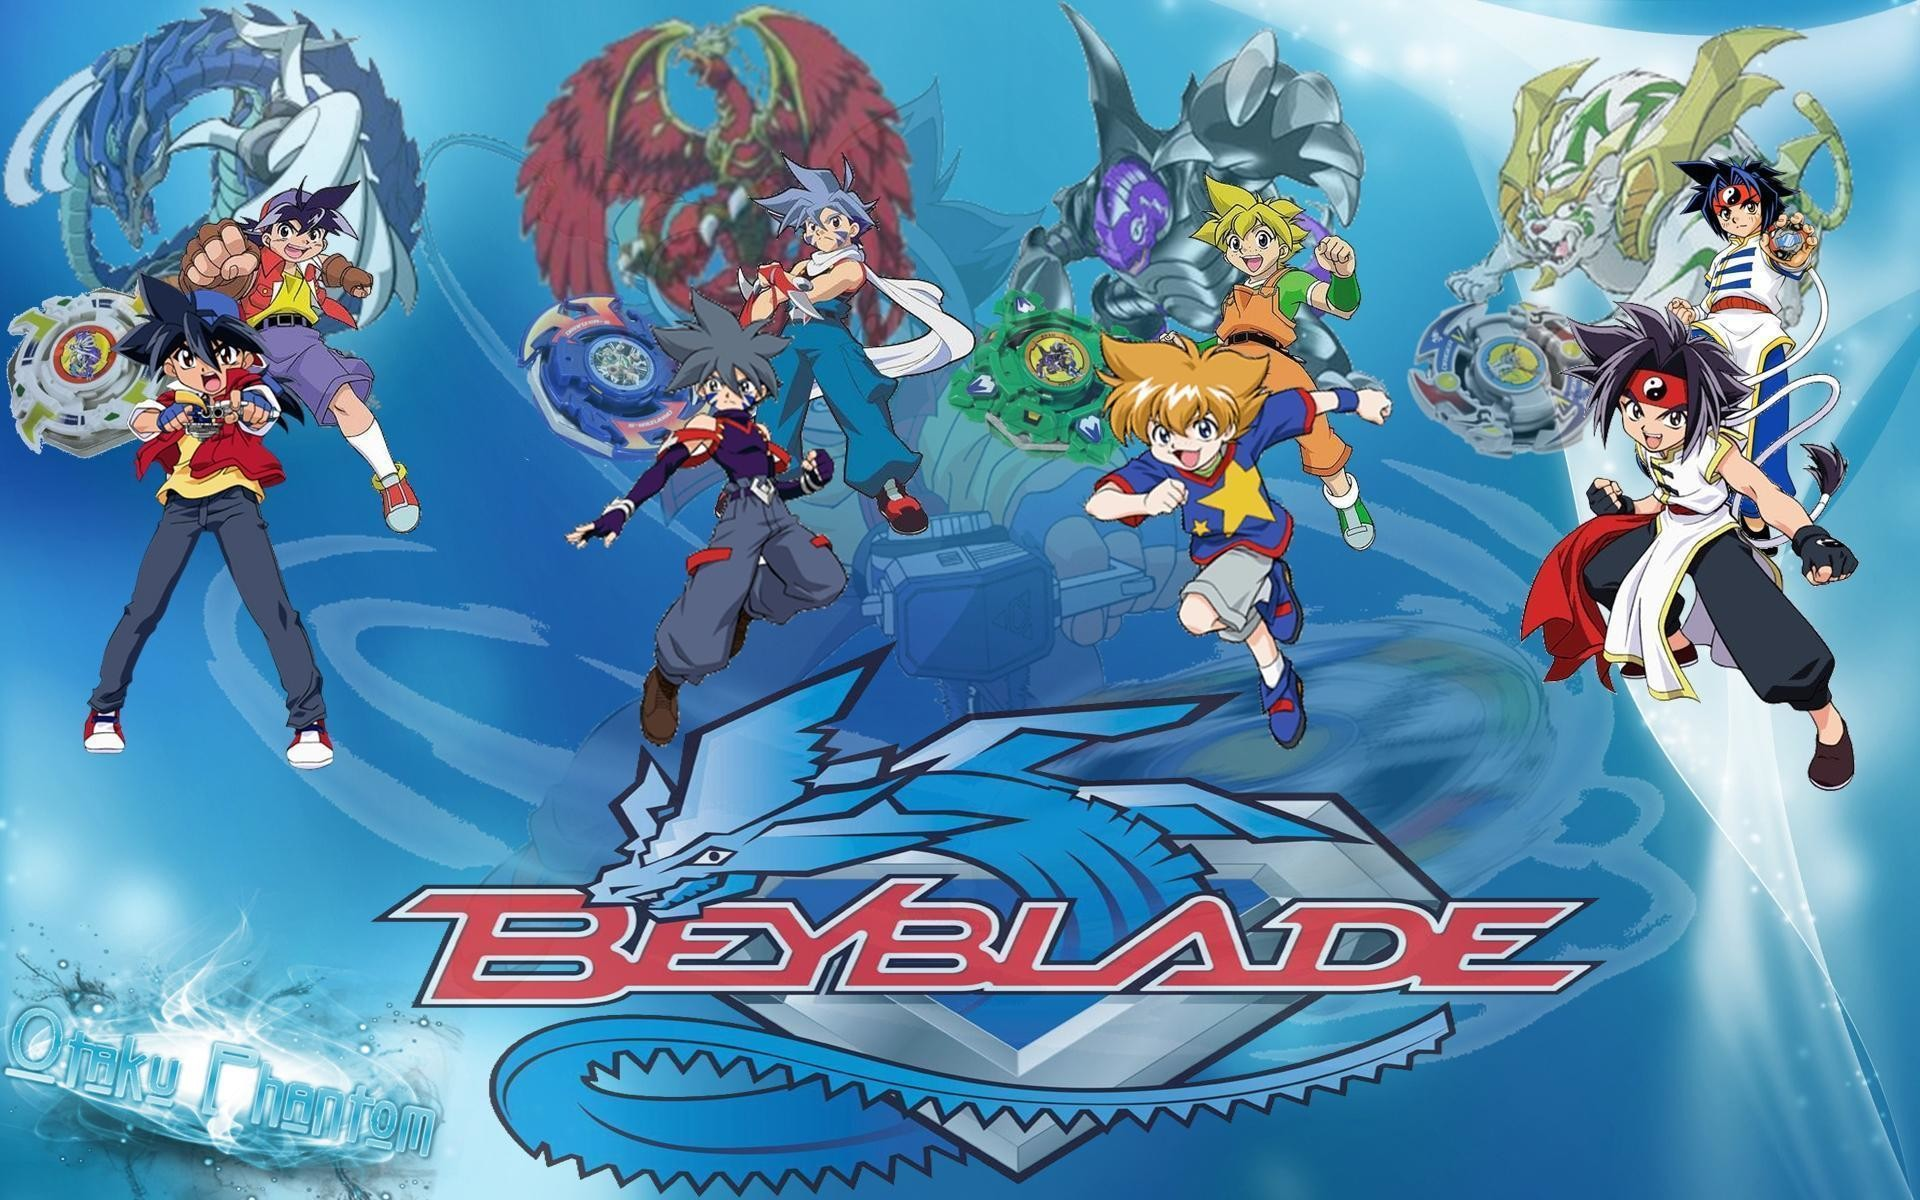 Beyblade wallpapers 49 images 1920x1200 beyblade wallpapers metal fury hd background with taken from voltagebd Images